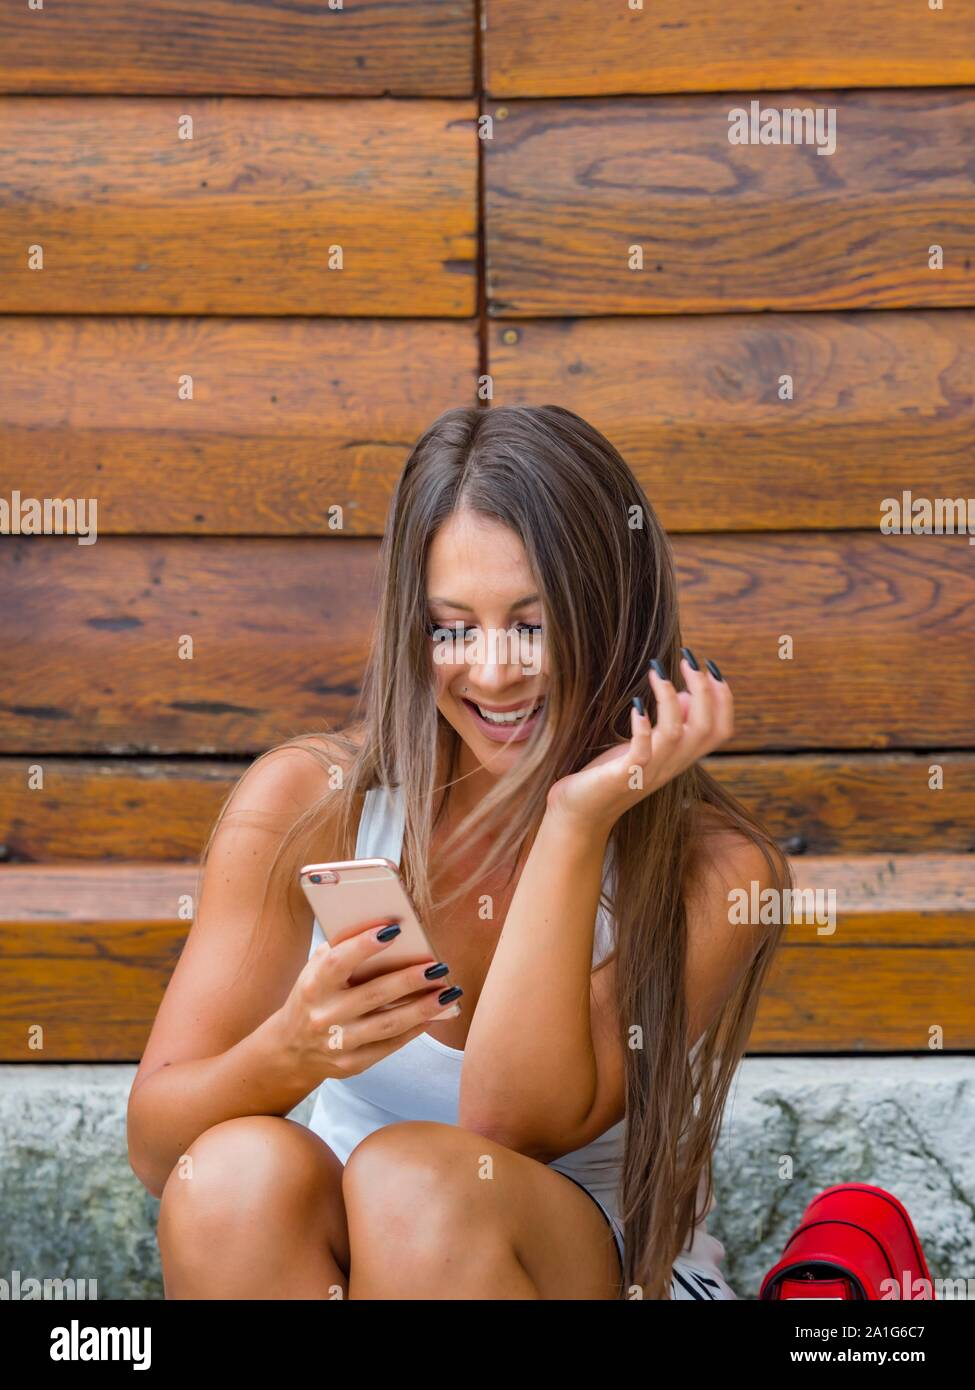 Looking at cellphone smartphone smiling happy reading new facebook inbox messenger message communicate communicating message Stock Photo